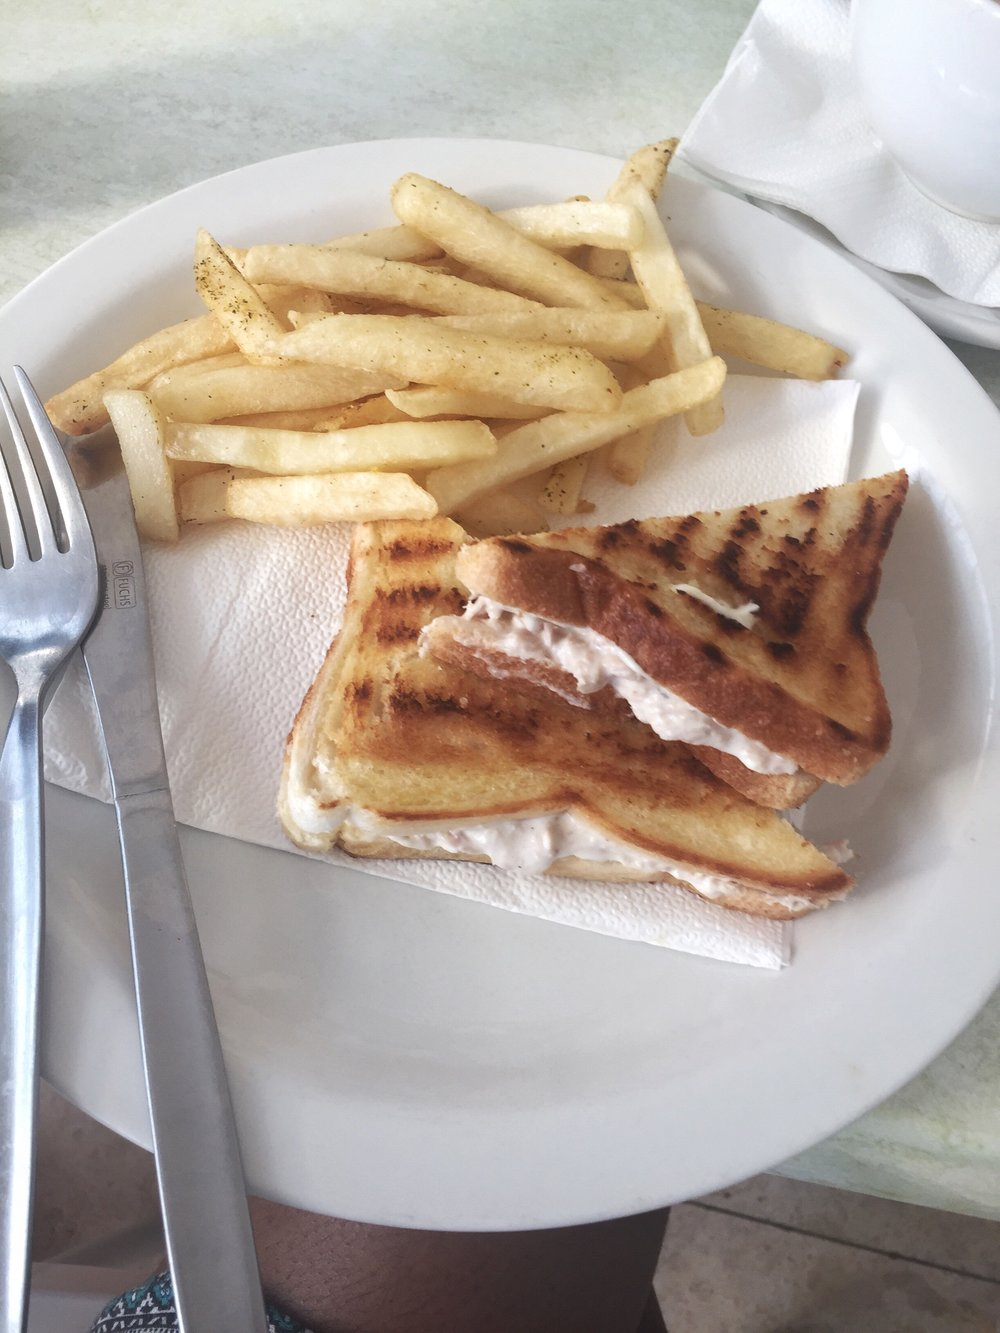 Toasted Sandwich and Fries